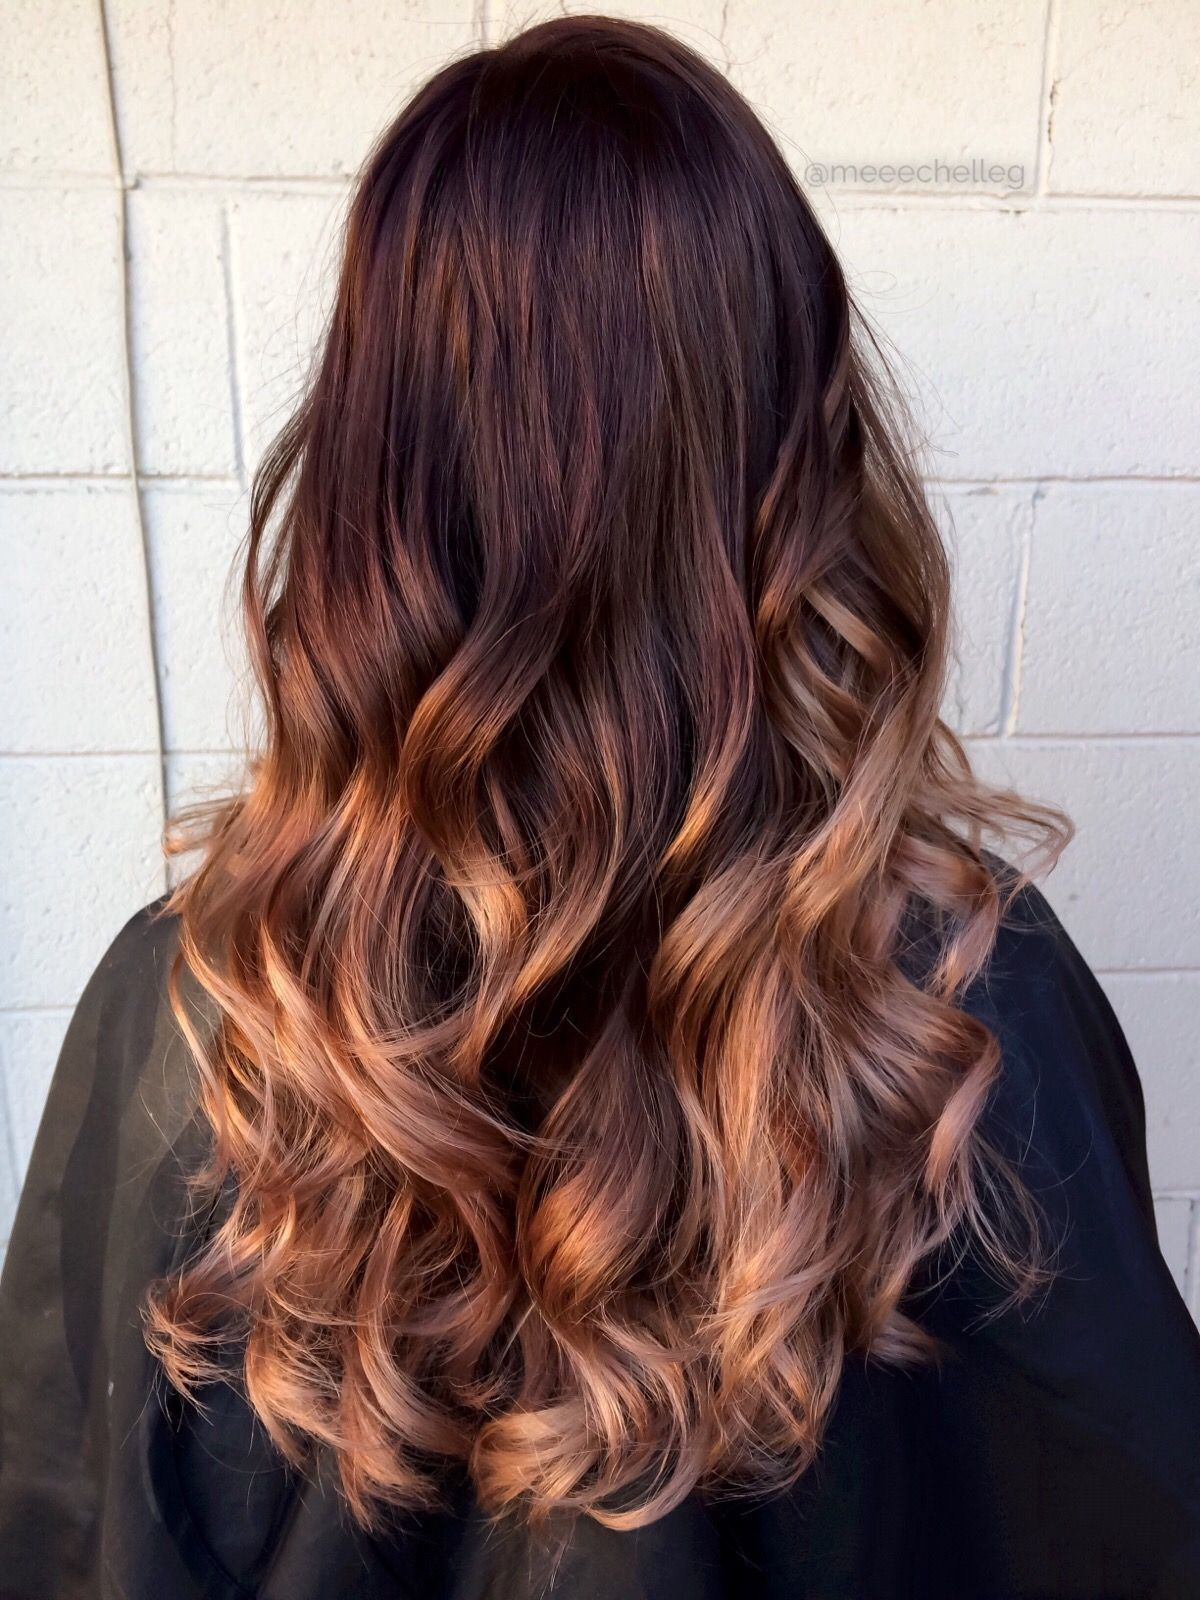 Pretty Ombre Ombre Long Hair Curls Curly Hair Dark Roots Dark Red Rose Gold Peach Light Ends Long Hair Styles Curly Hair Styles Curls For Long Hair